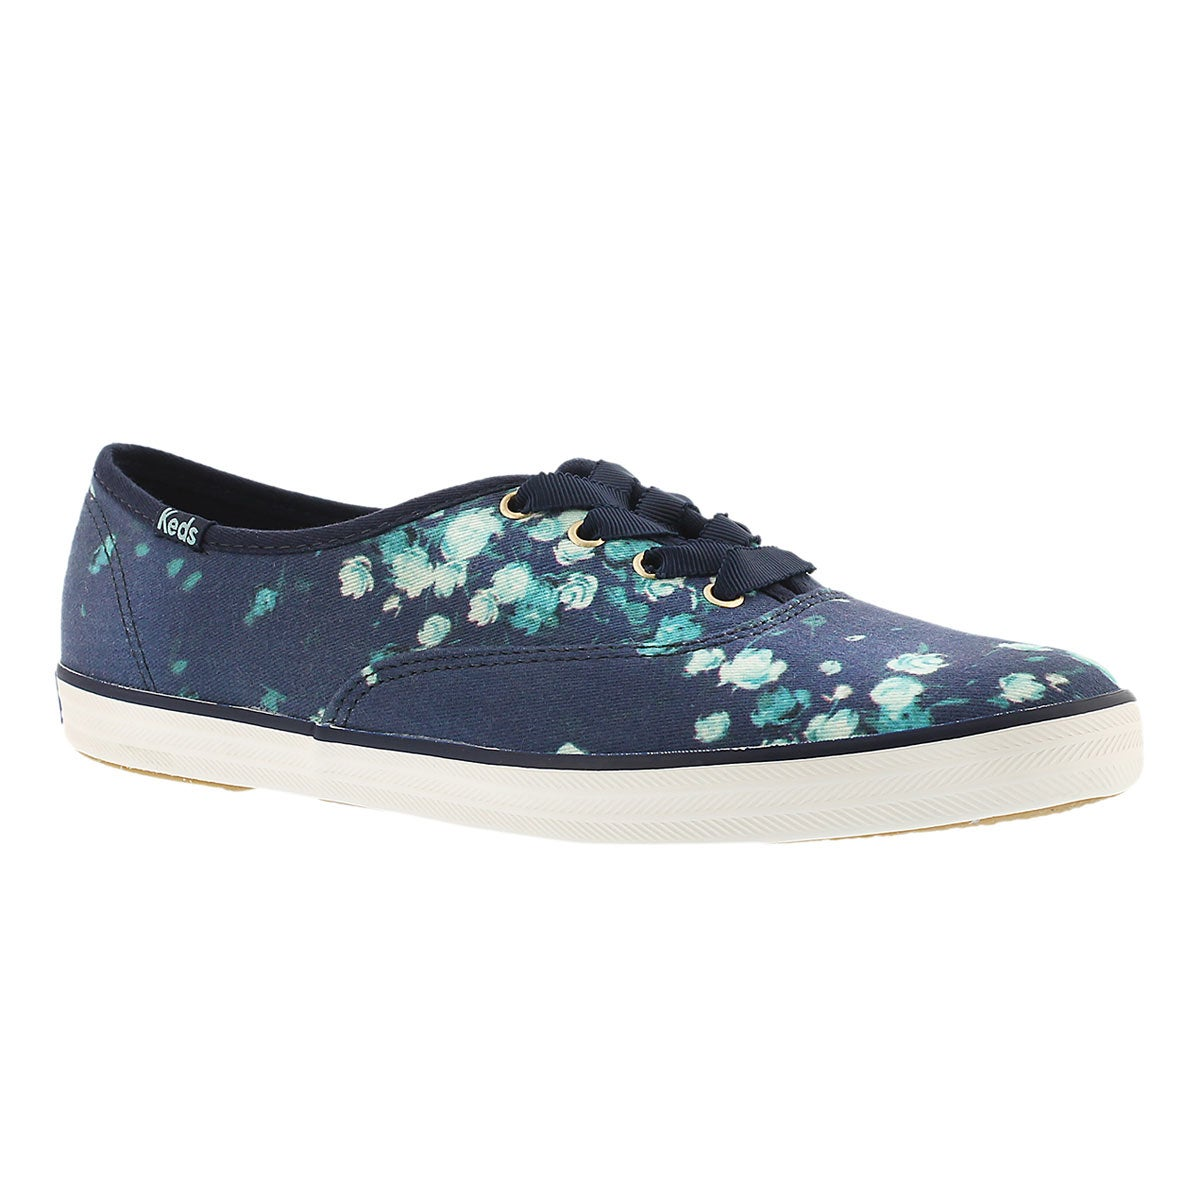 Lds Frost Floral navy printed sneaker